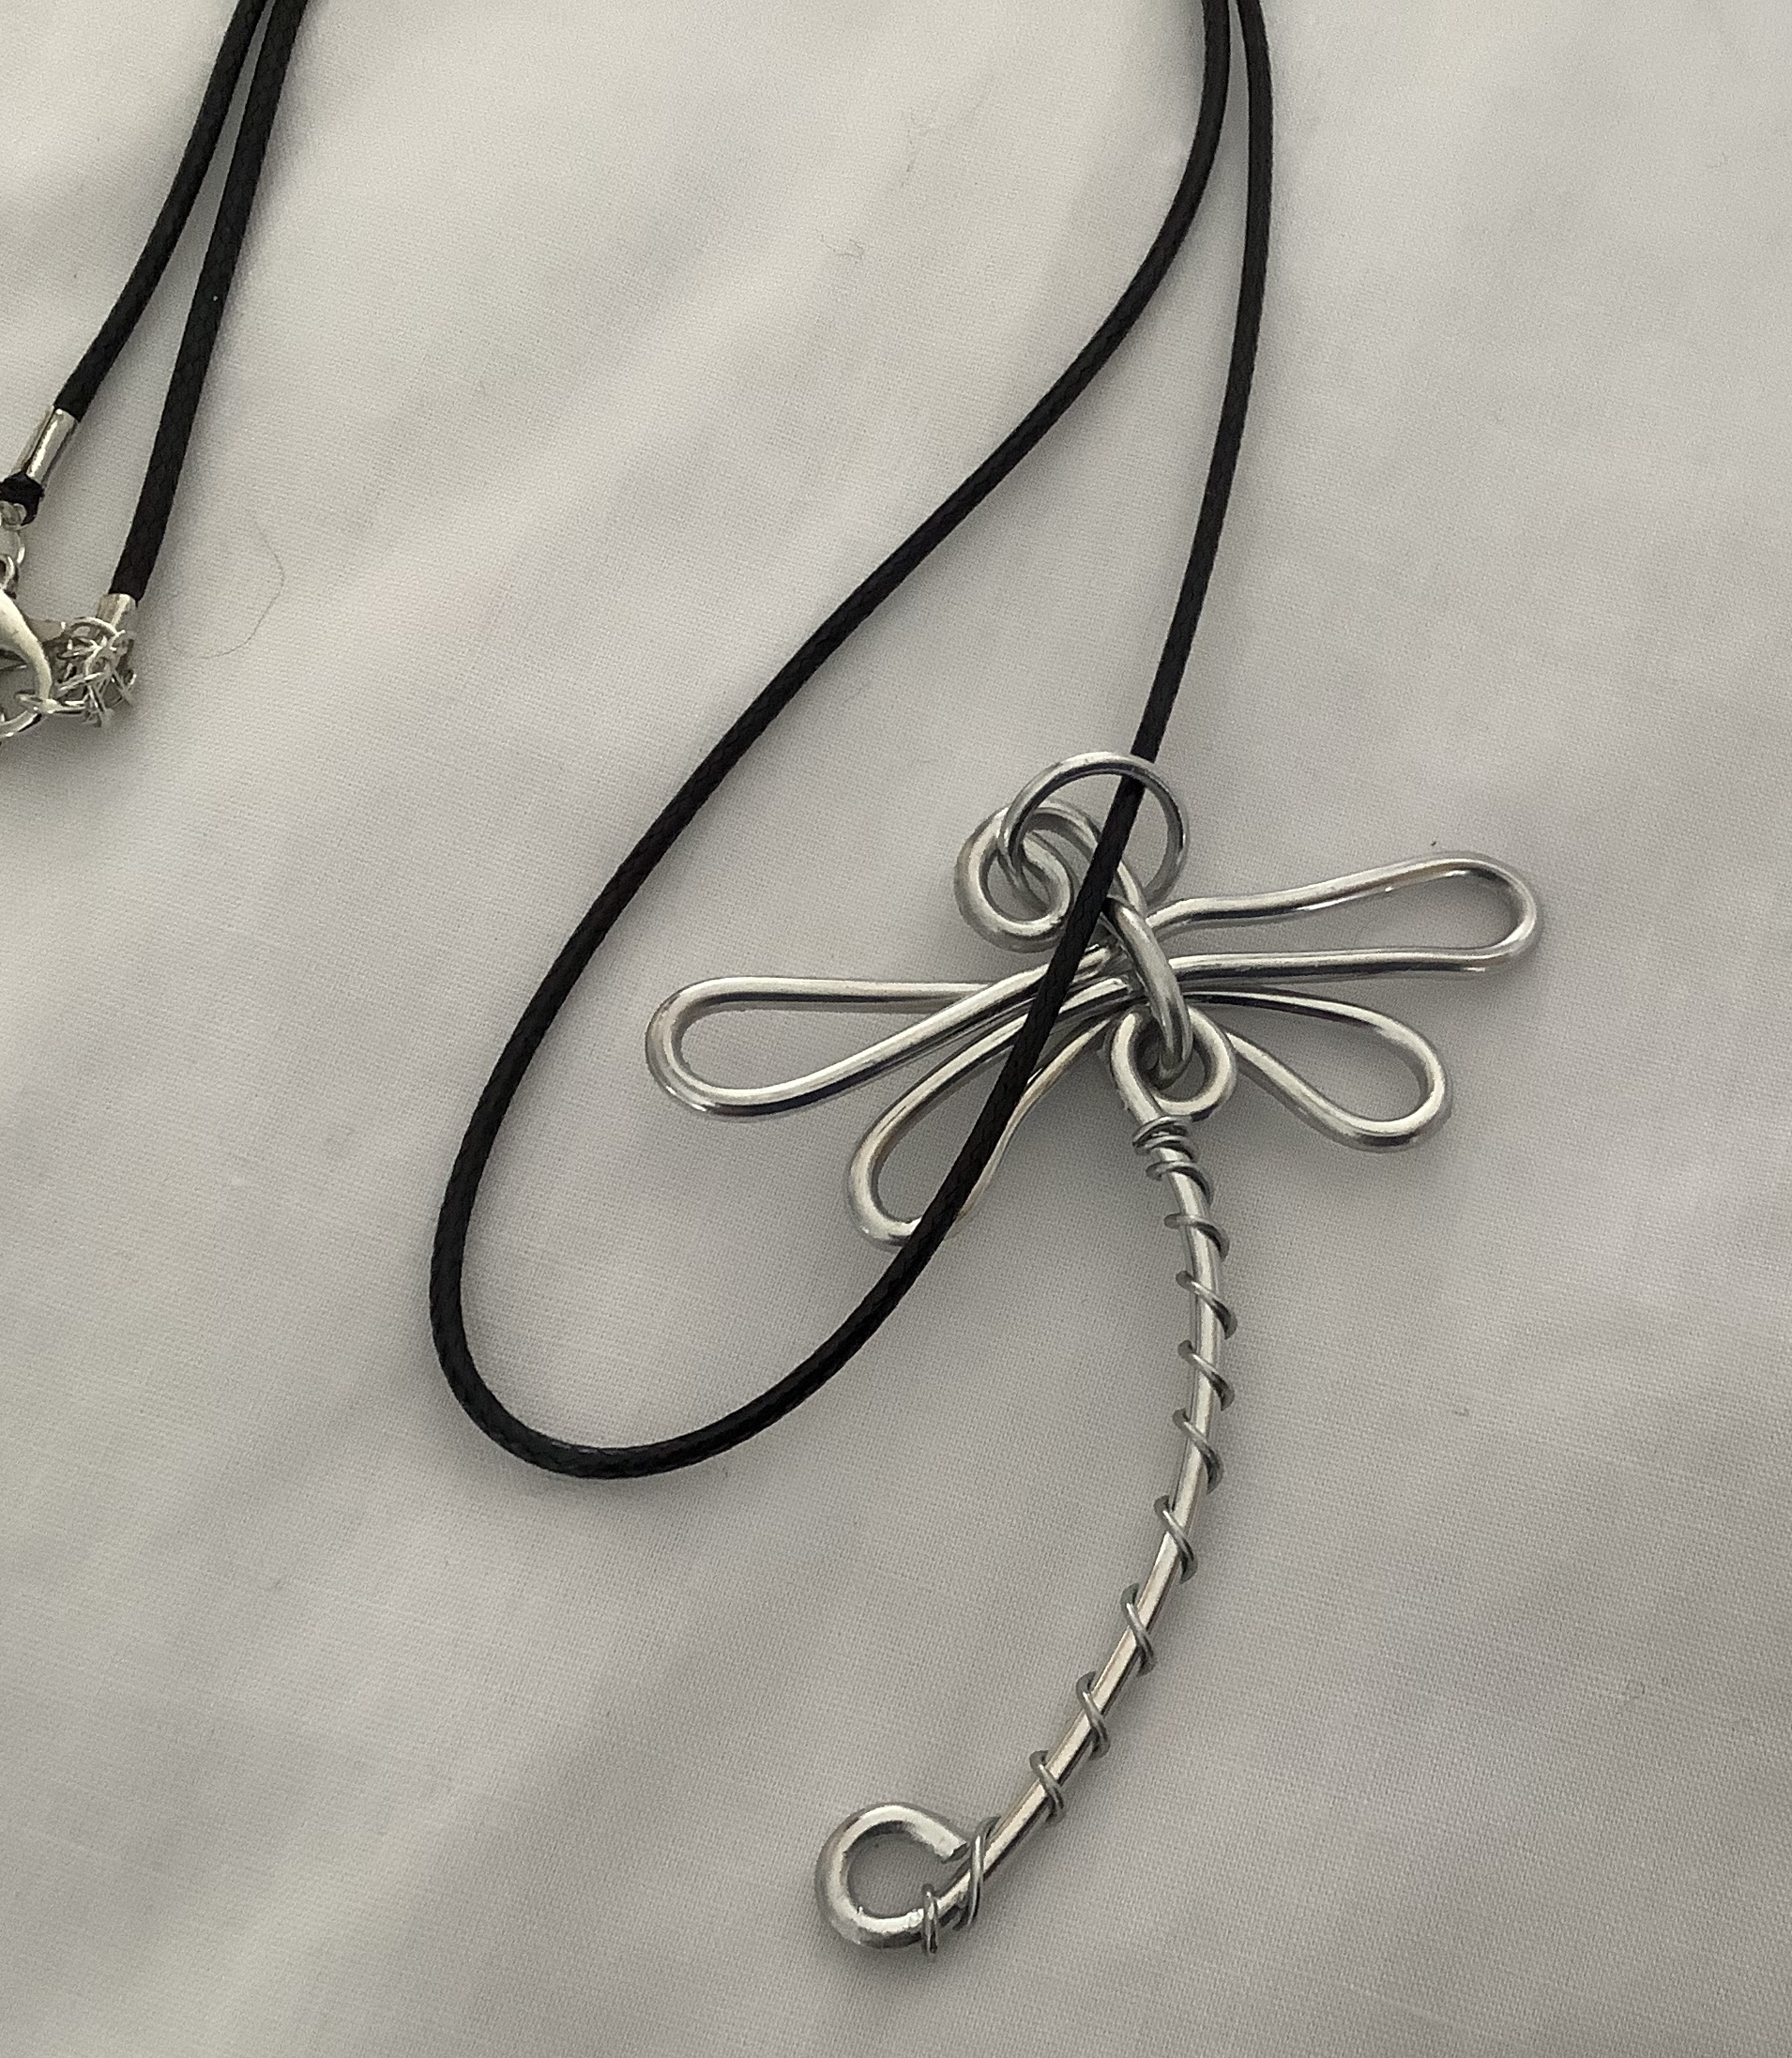 """Dragonfly Pendant is hand wired using silver or aluminum wire.  The """"Dragonfly"""" symbolizes change, transformation adaptability and self-realization. If a dragonfly lands on you it is a sign of good luck.  Price $30.00"""